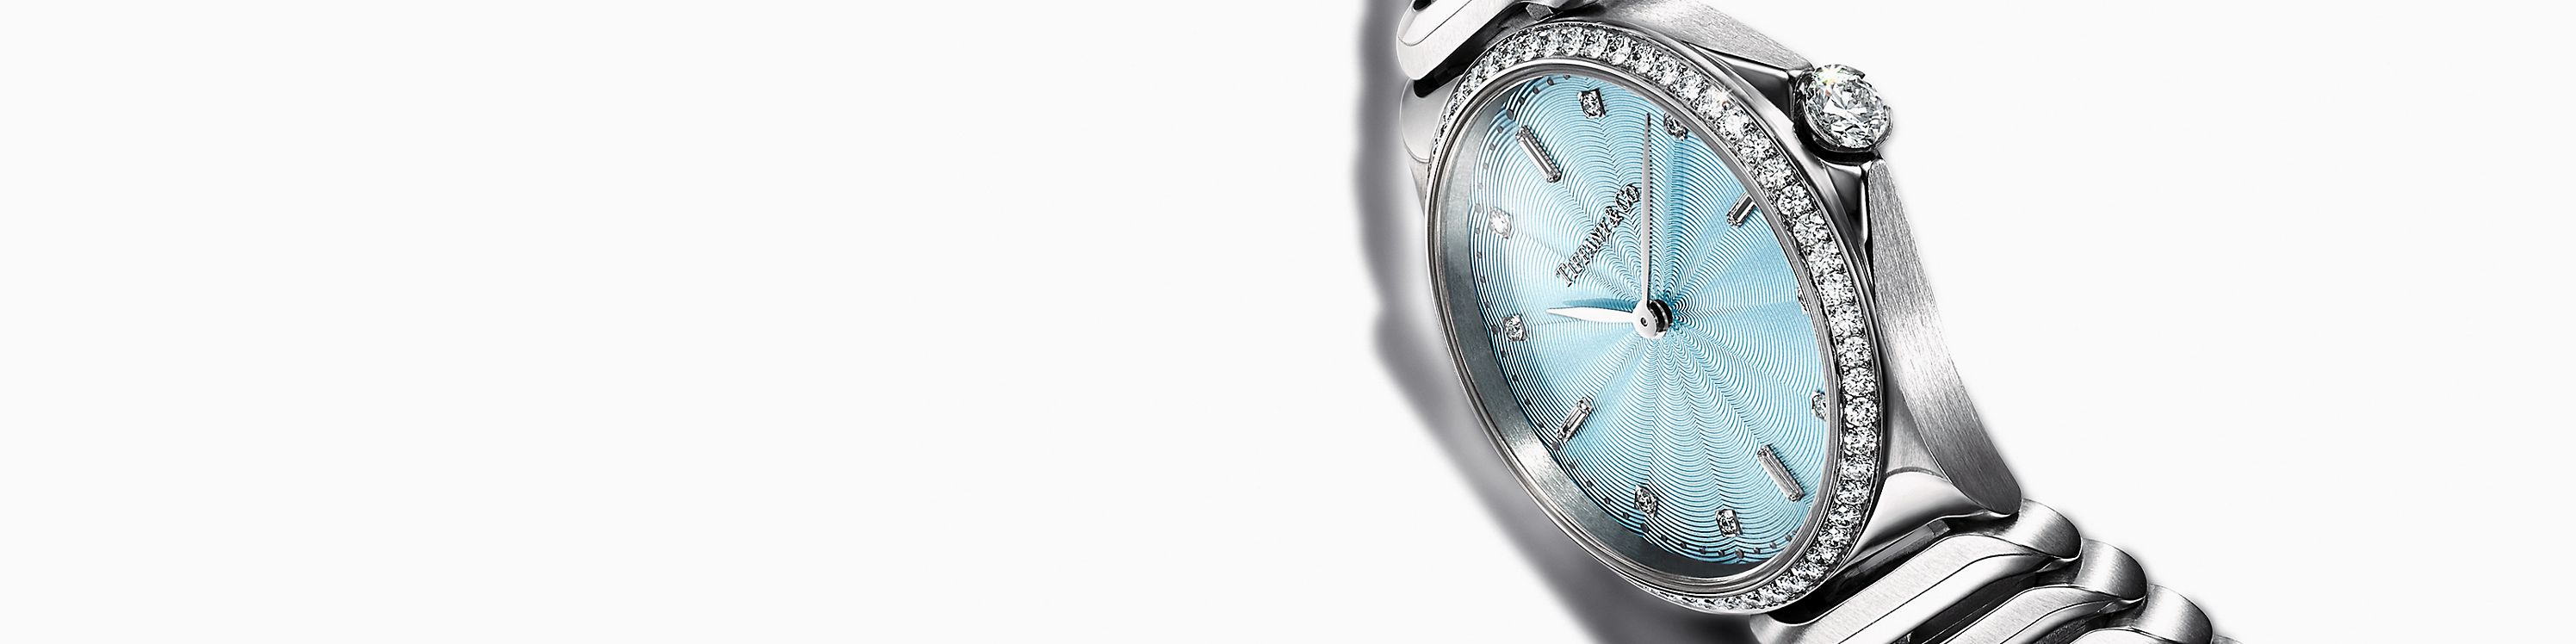 Shop Tiffany & Co. Metro Watches